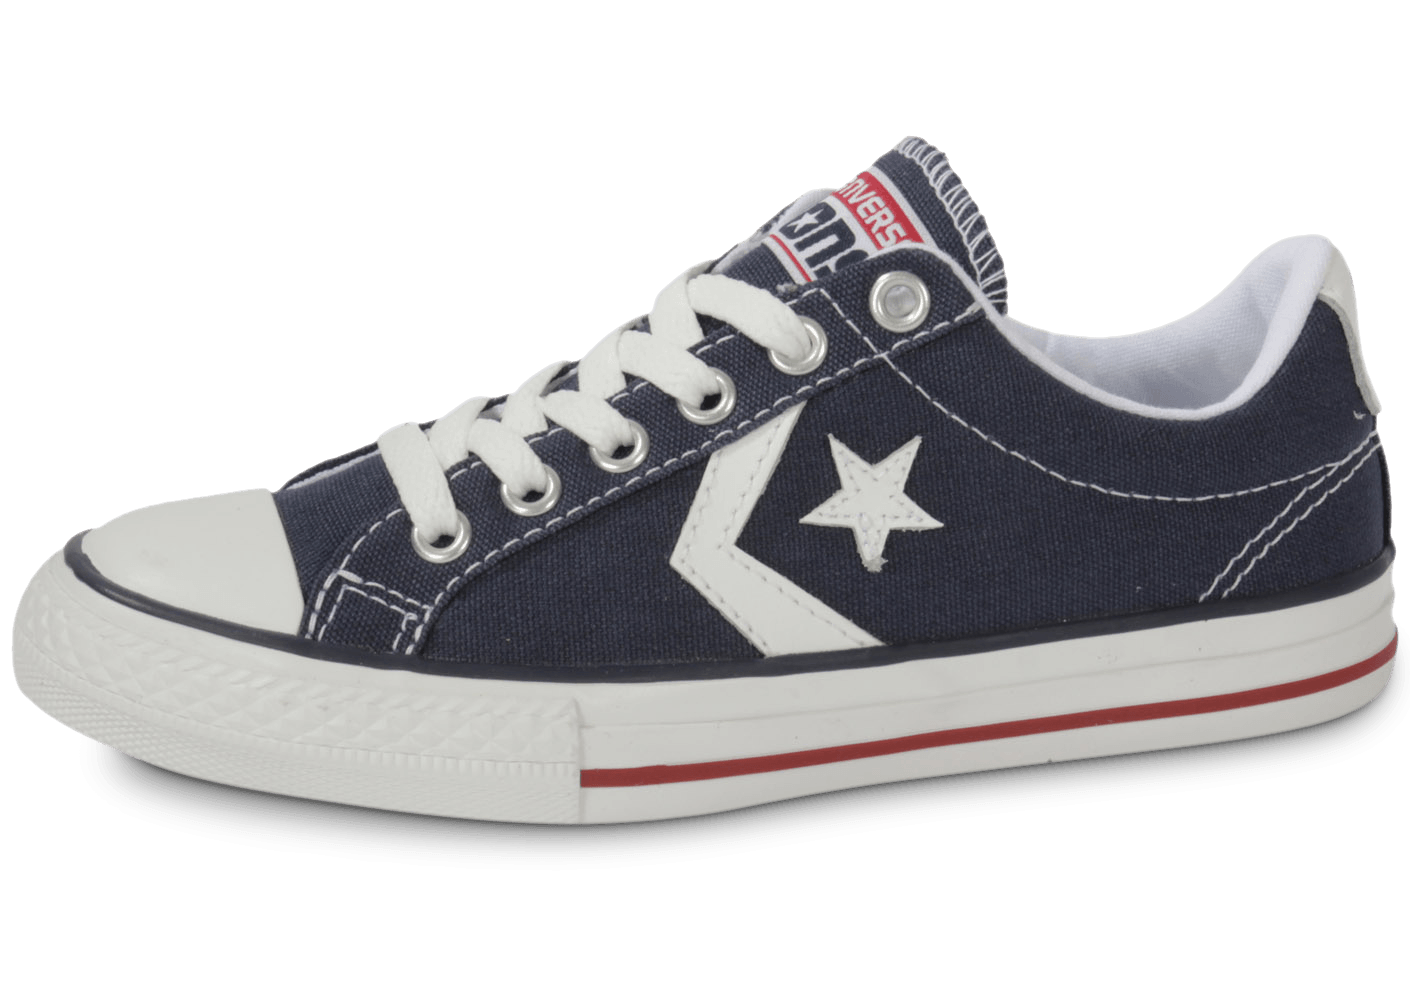 converse star player enfant bleu marine chaussures black friday chausport. Black Bedroom Furniture Sets. Home Design Ideas